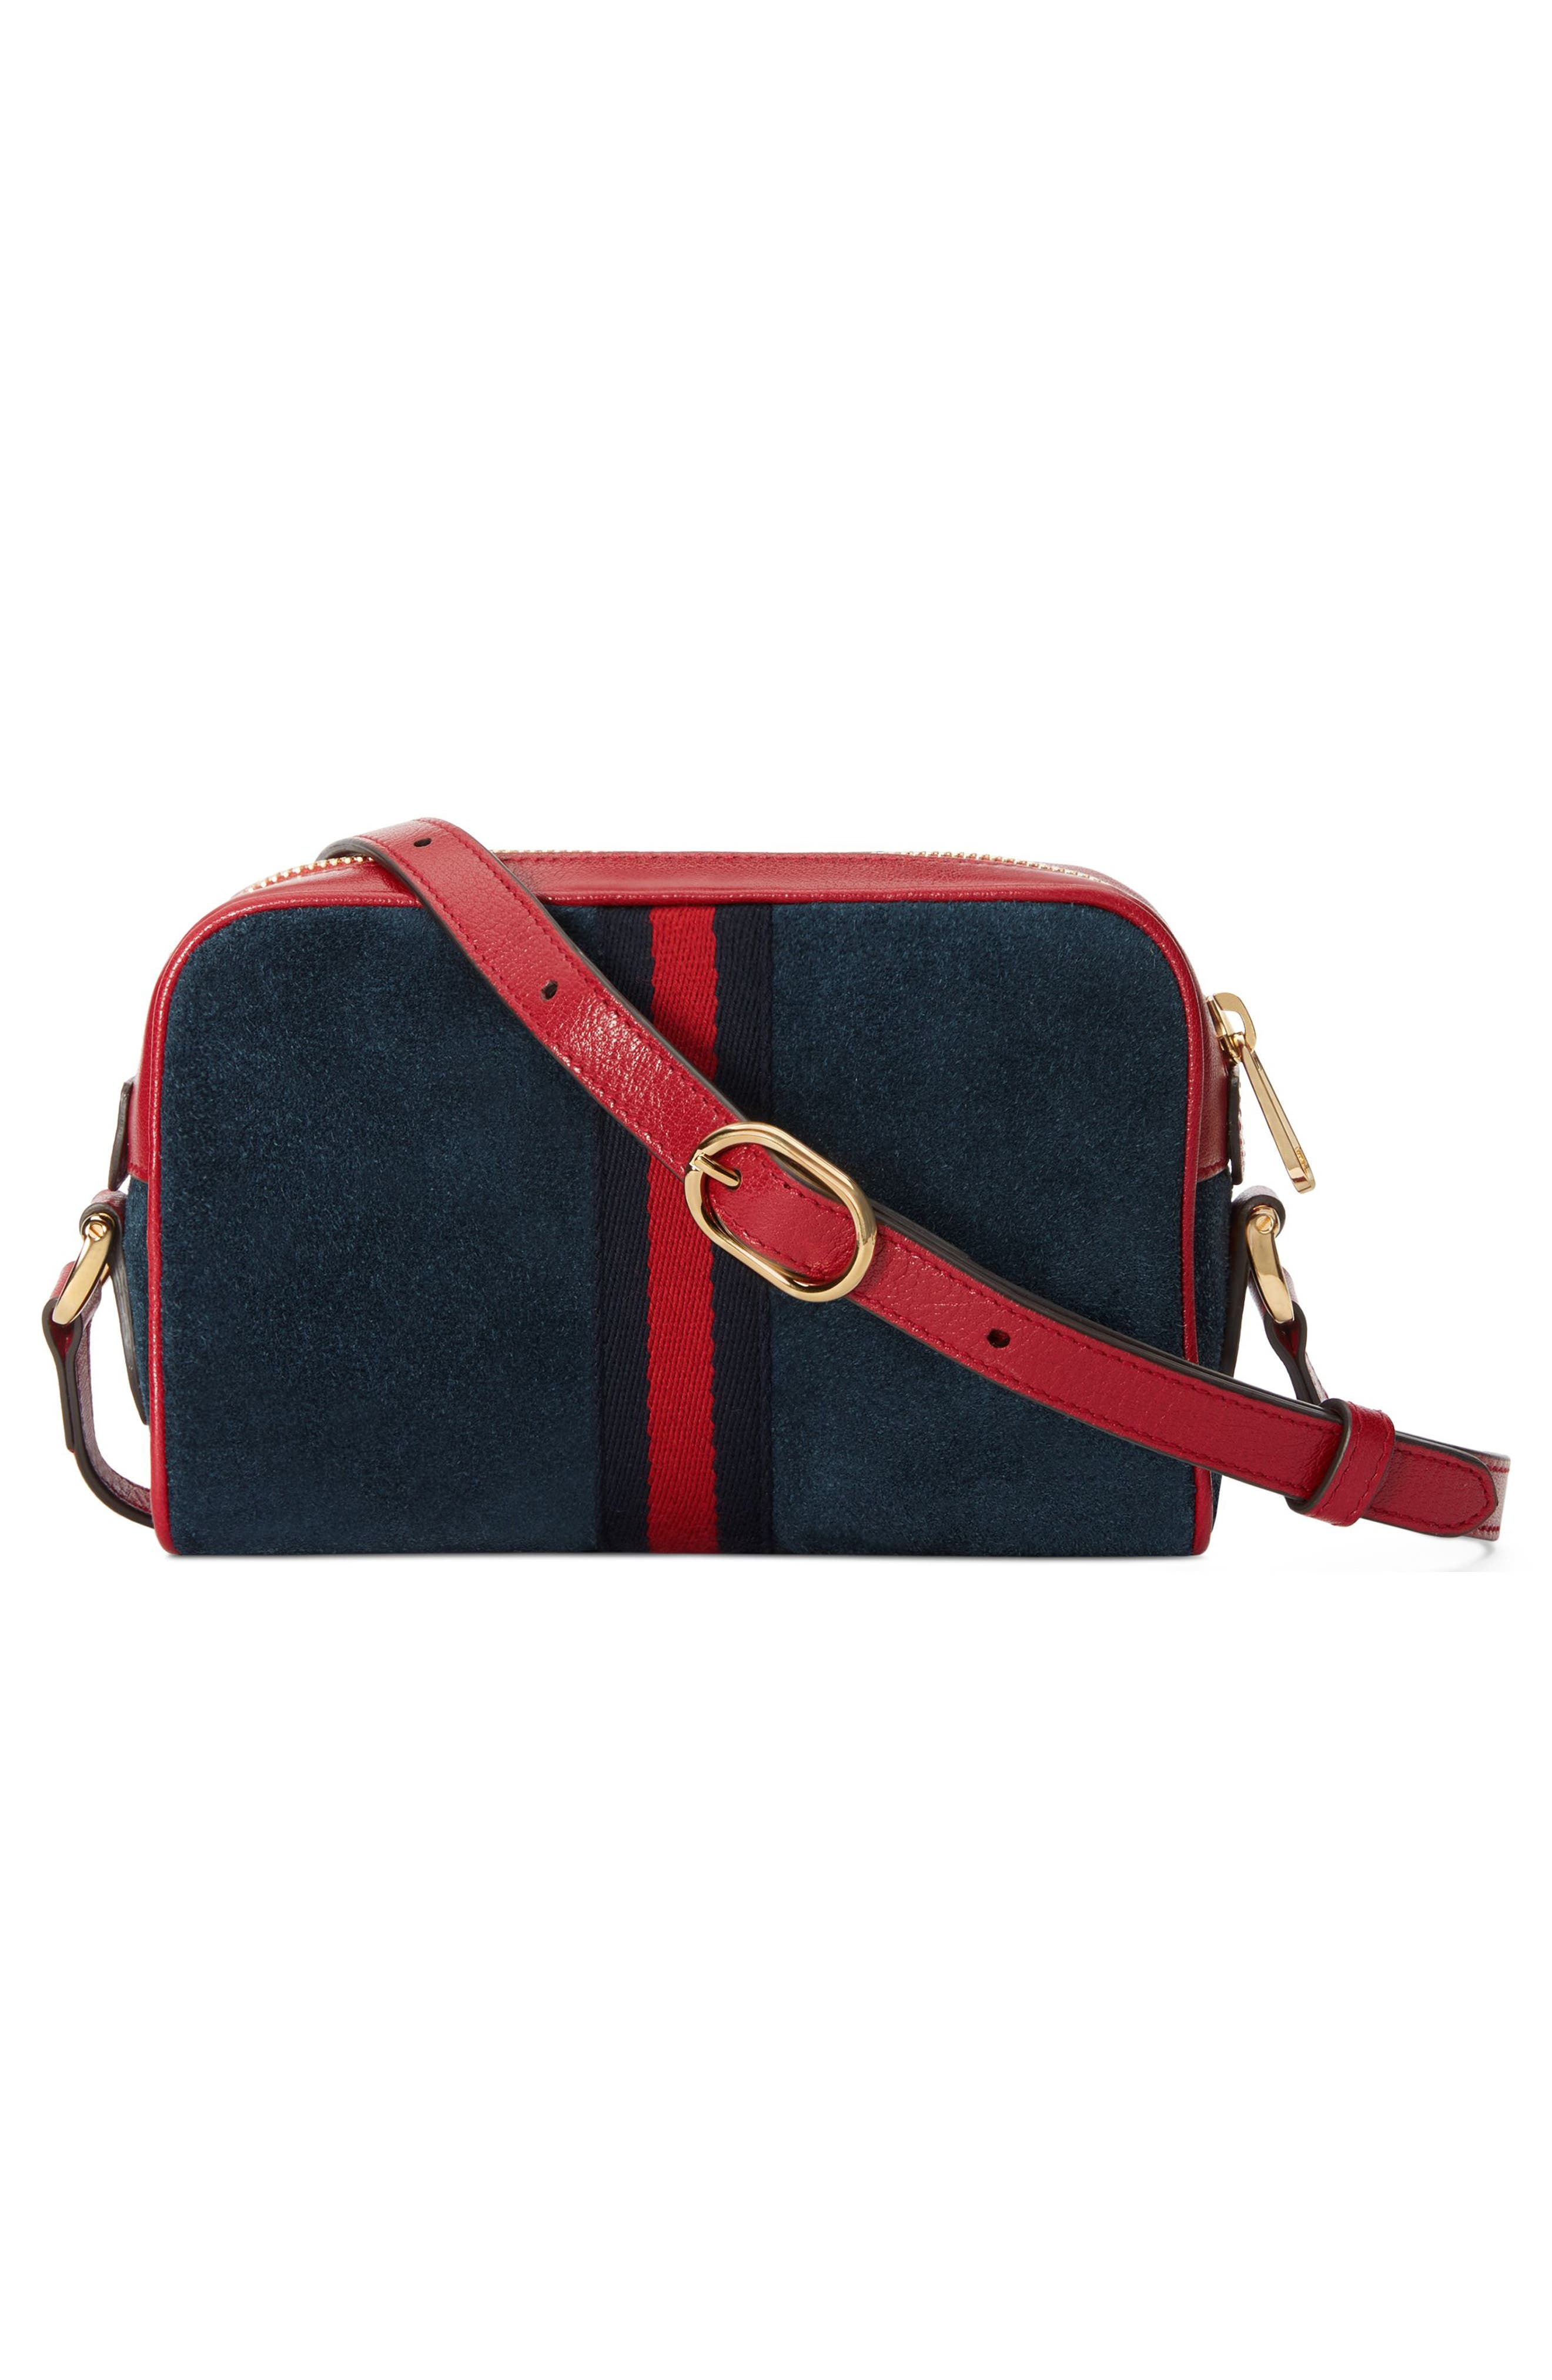 Ophidia Small Suede & Leather Crossbody Bag,                             Alternate thumbnail 2, color,                             NEW BLU/ ROMANATIC CERISE